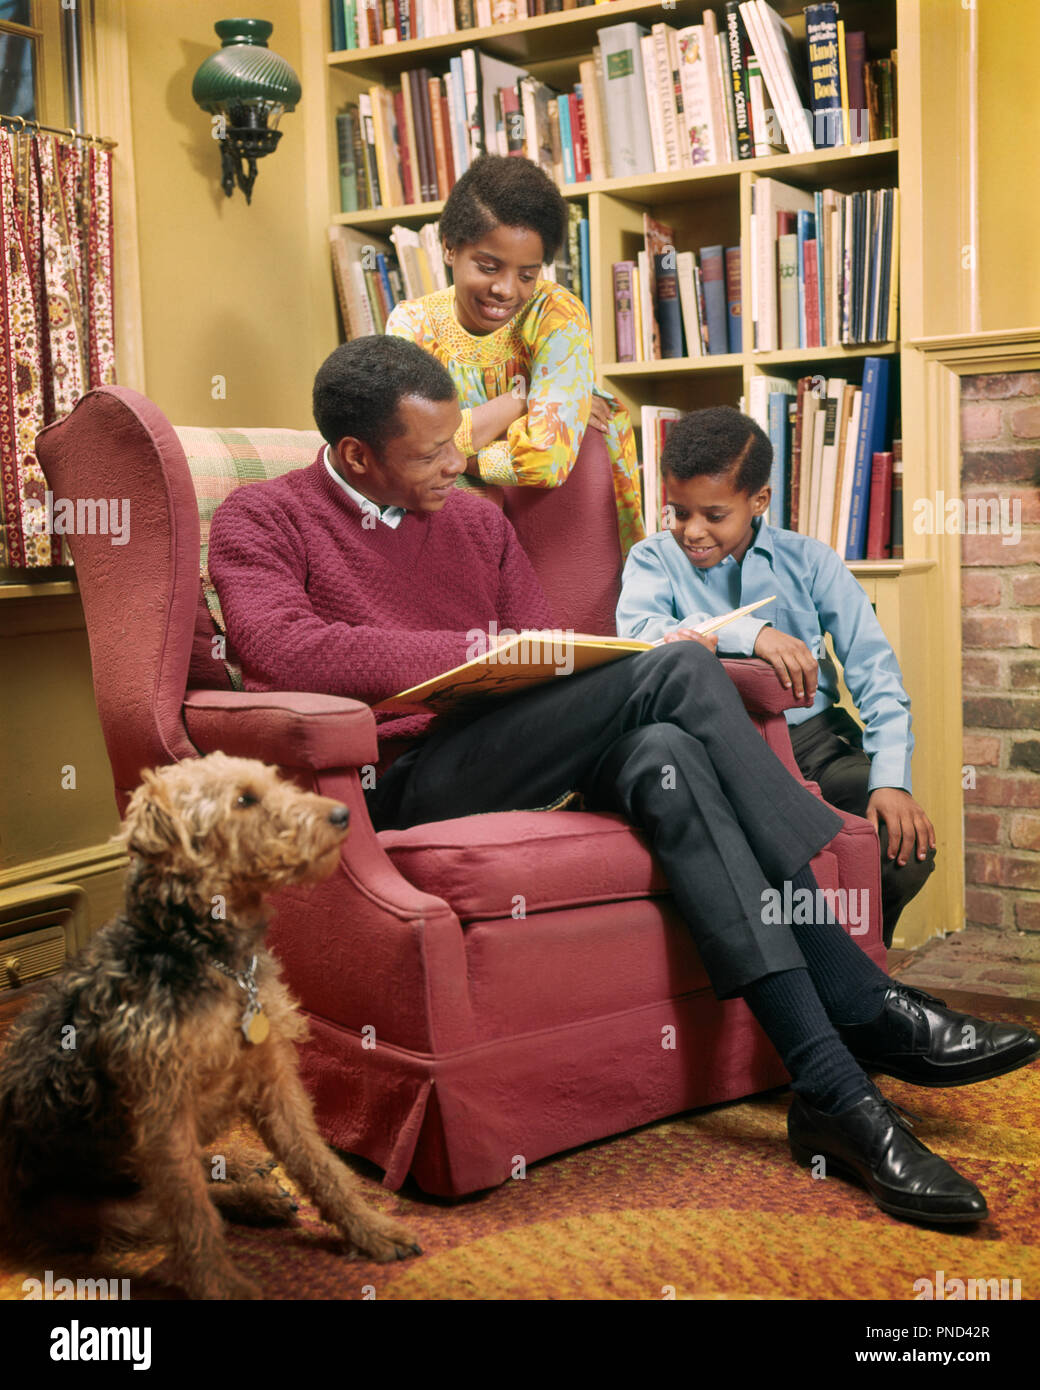 1970s AFRICAN AMERICAN FATHER READING TO SON AND DAUGHTER IN LIVING ROOM WITH AIREDALE DOG SITTING BY CHAIR - kj5657 PHT001 HARS 3 INDOOR INDOORS NOSTALGIC PAIR SUBURBAN URBAN DIVERSITY COLOR RELATIONSHIP PET OLD TIME NOSTALGIA BROTHER READ OLD FASHION SISTER 1 JUVENILE COMMUNICATION FRIEND TEAMWORK SONS JOY LIFESTYLE PARENTING FEMALES BROTHERS GROWNUP HOME LIFE PEOPLE CHILDREN FRIENDSHIP FULL-LENGTH DAUGHTERS PERSONS INSPIRATION GROWN-UP MALES SIBLINGS AMERICANS SISTERS FATHERS PATERNAL PARENT AND CHILD SINGLE PARENTS PARENTS AND CHILDREN FATHERHOOD HAPPINESS MAMMALS MAN'S BEST FRIEND LEISURE - Stock Image